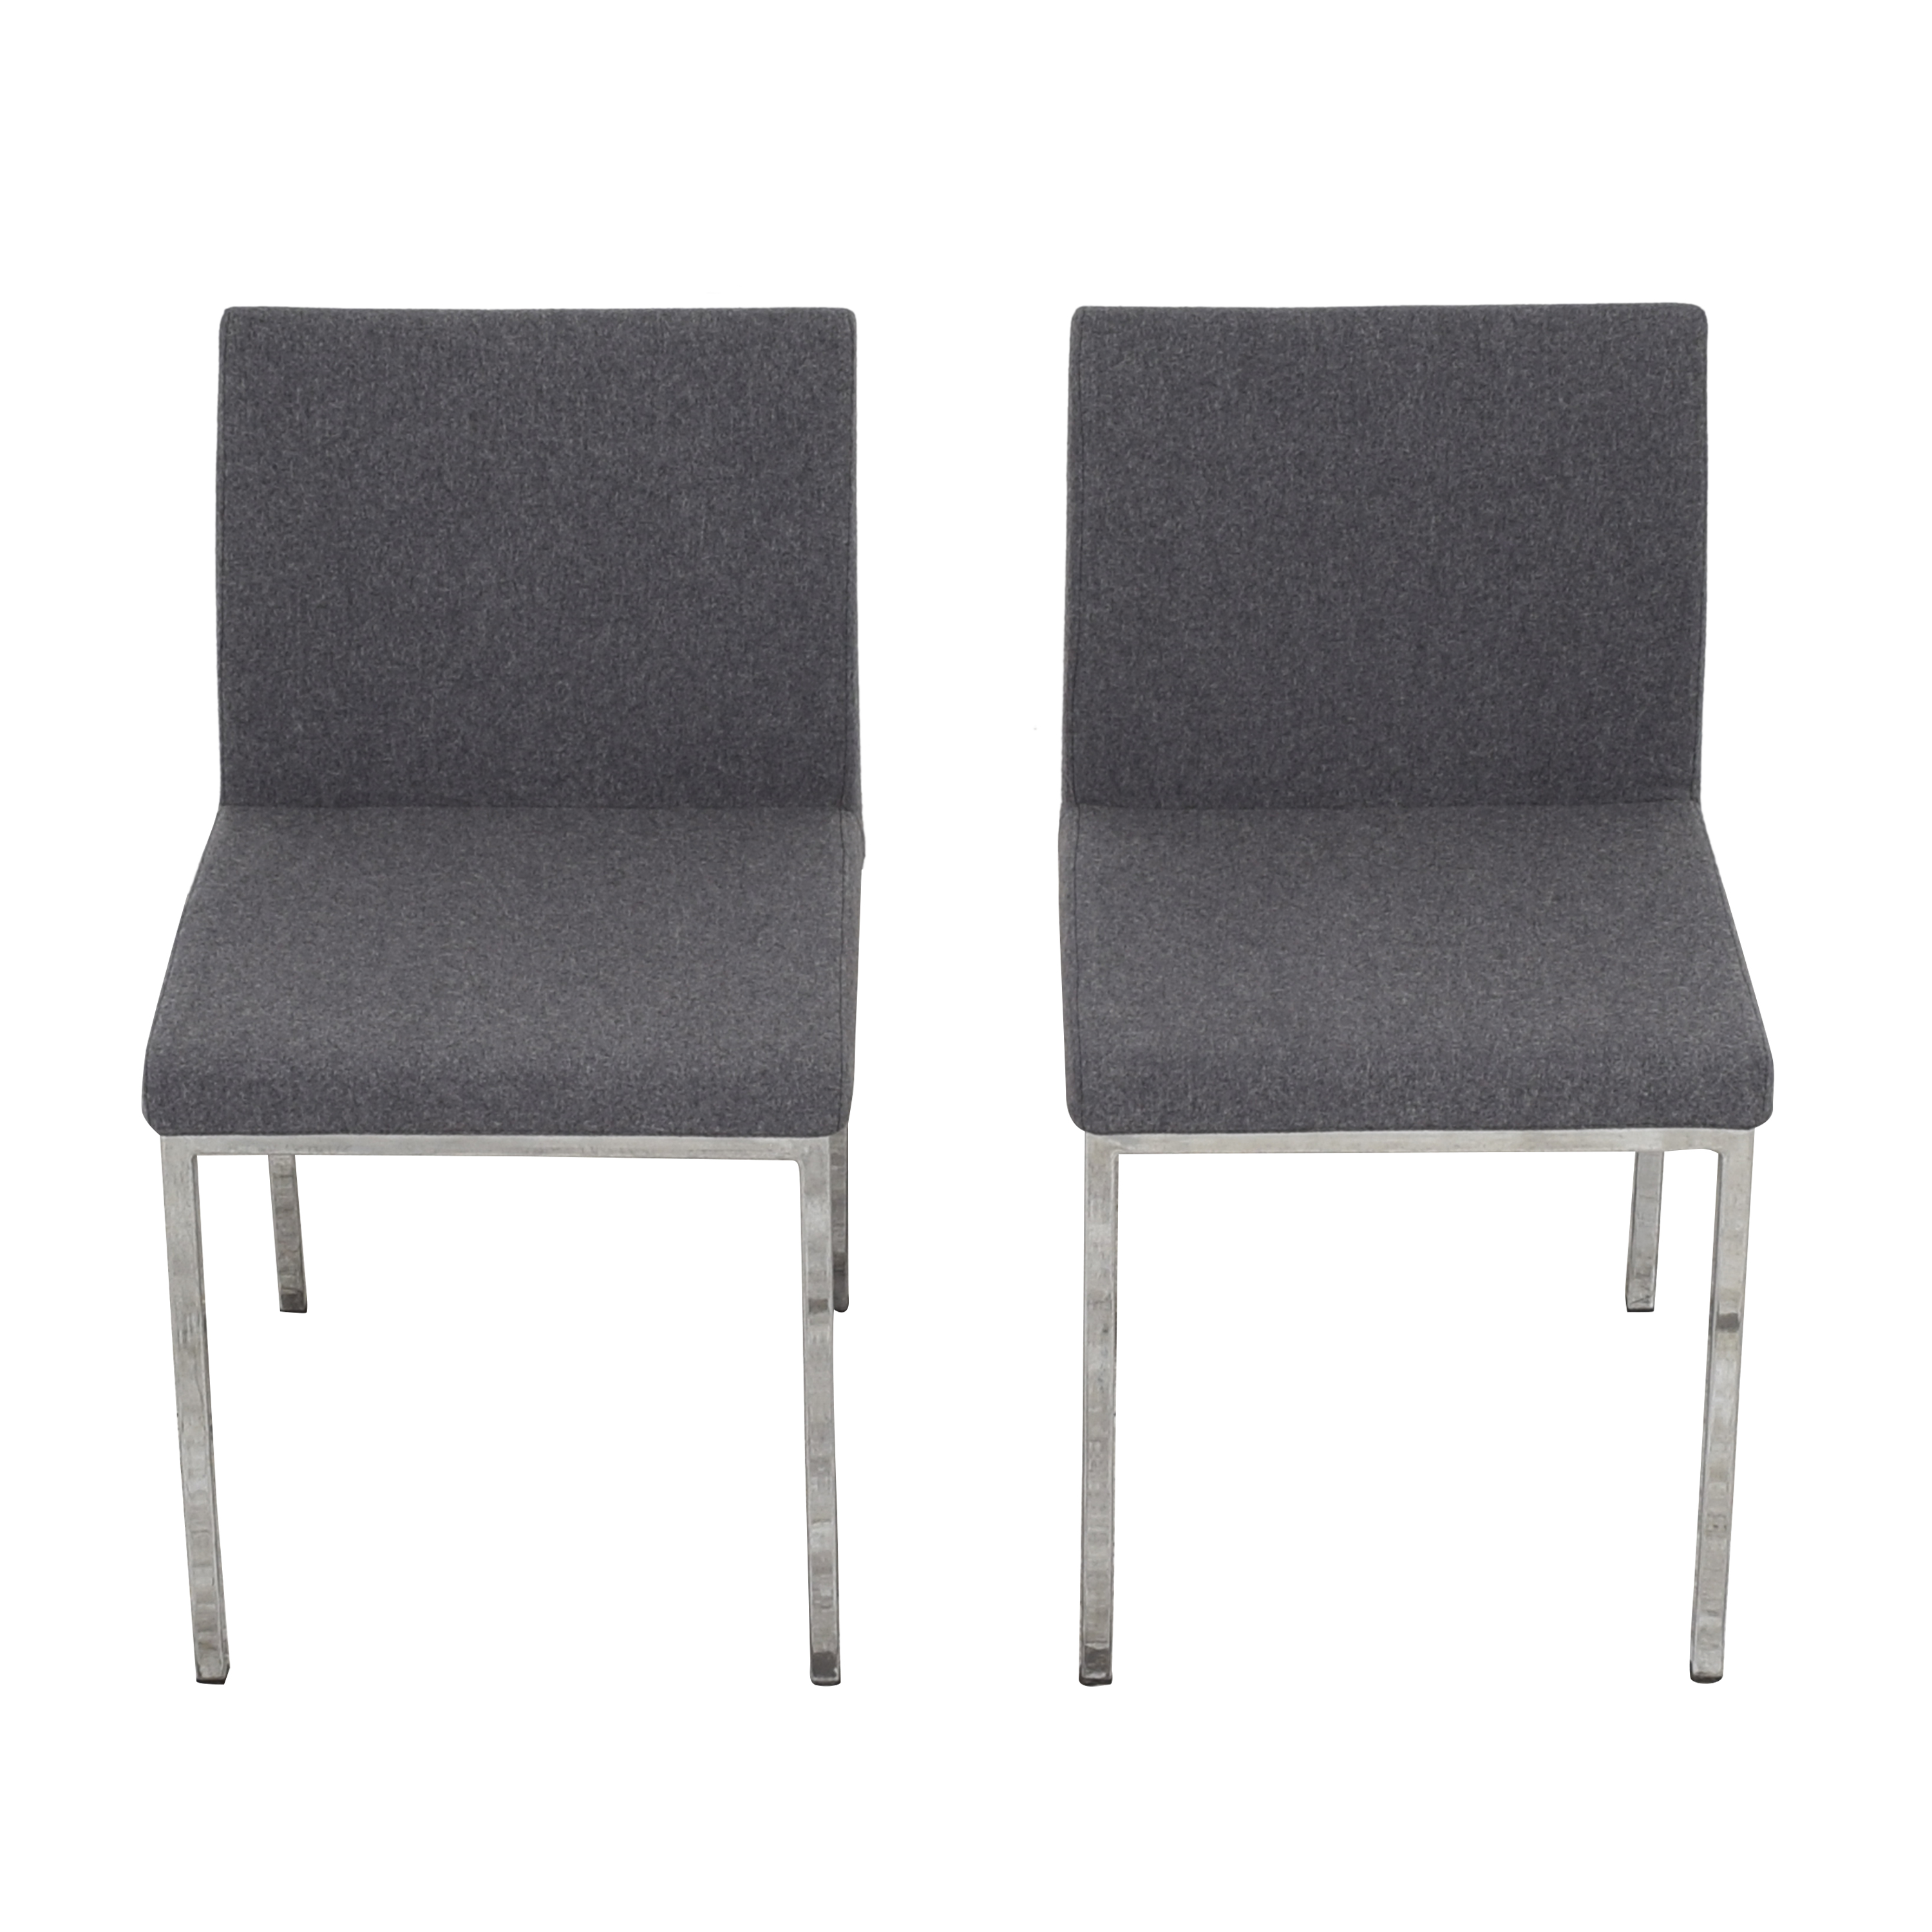 Crate & Barrel Crate & Barrel Upholstered Dining Chairs nyc